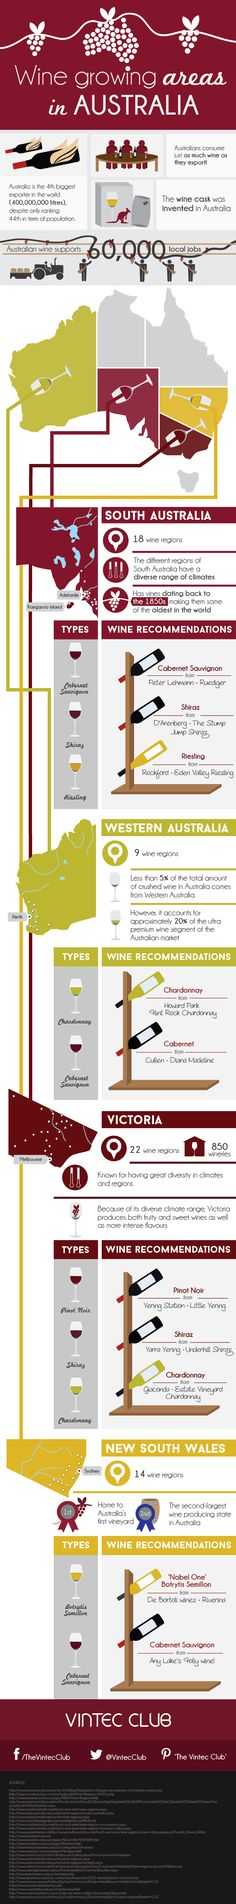 INFOGRAPHIC – Wine Growing Regions of Australia